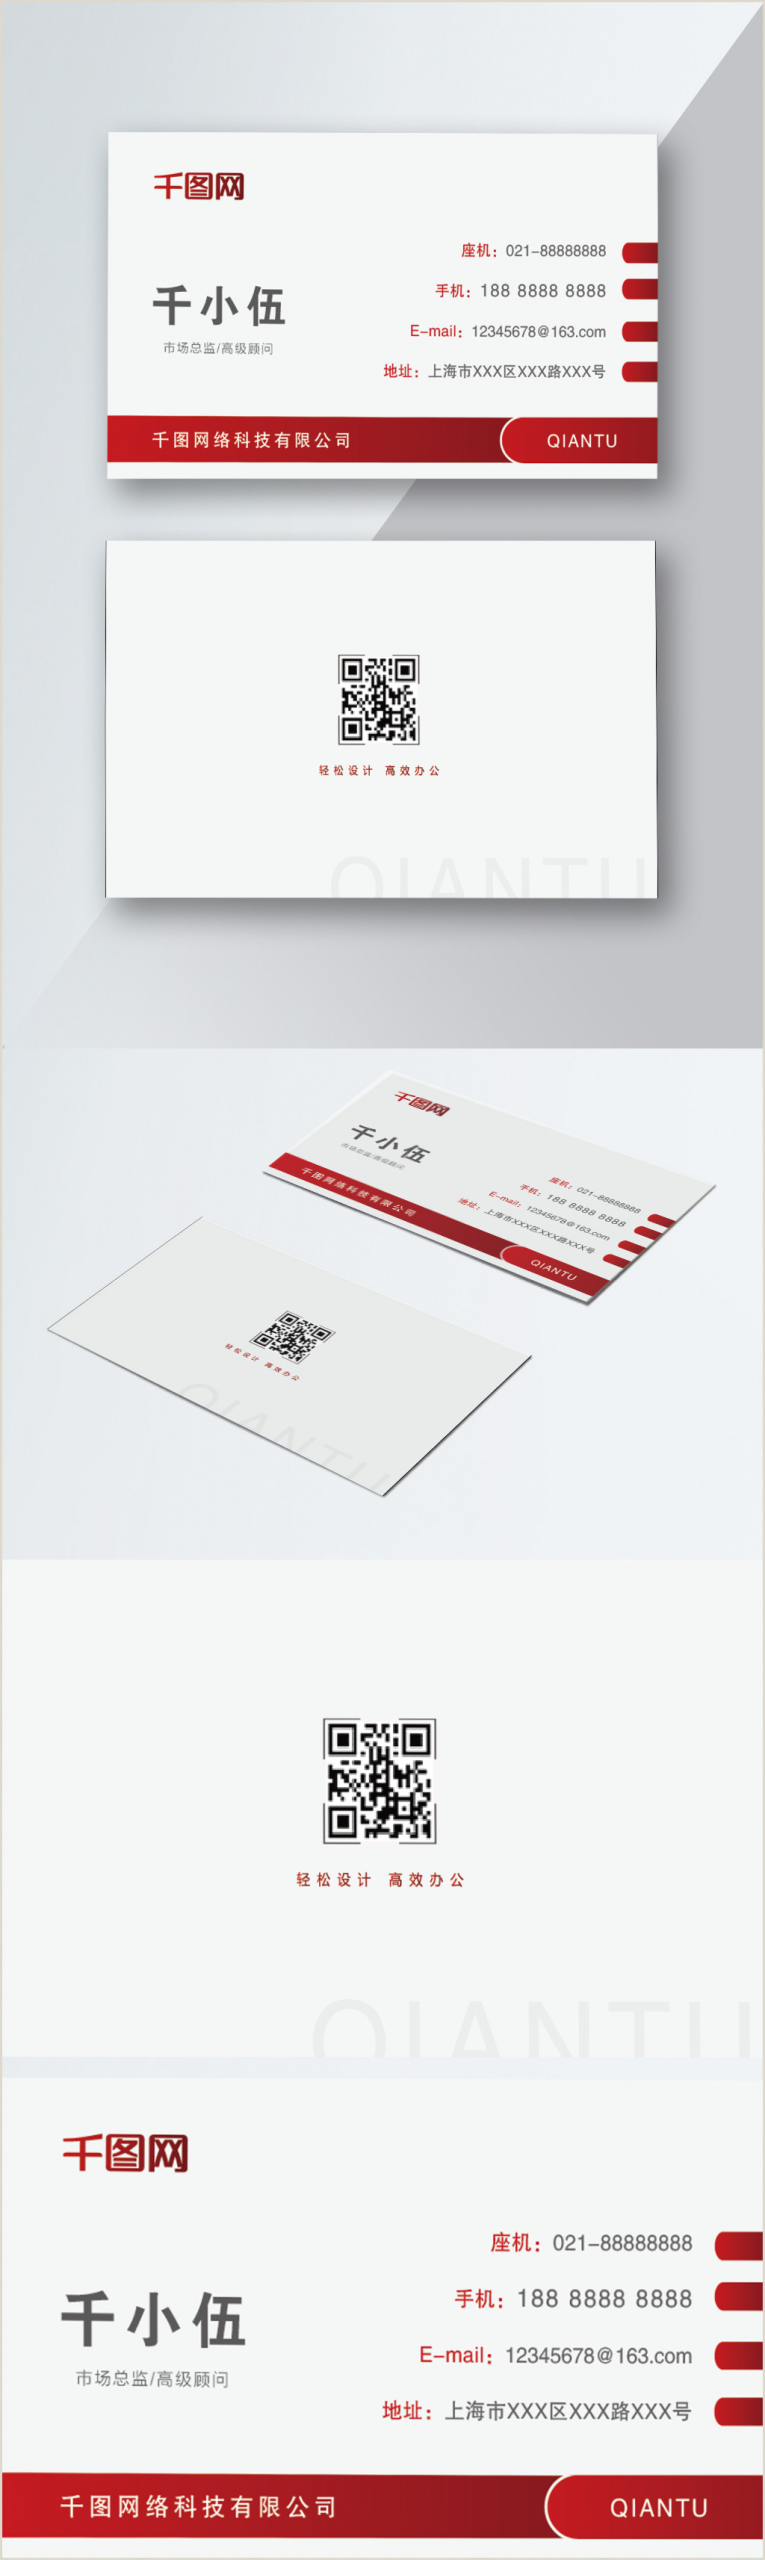 Business Card Details Black And White Business Senior Business Card With Qr Code